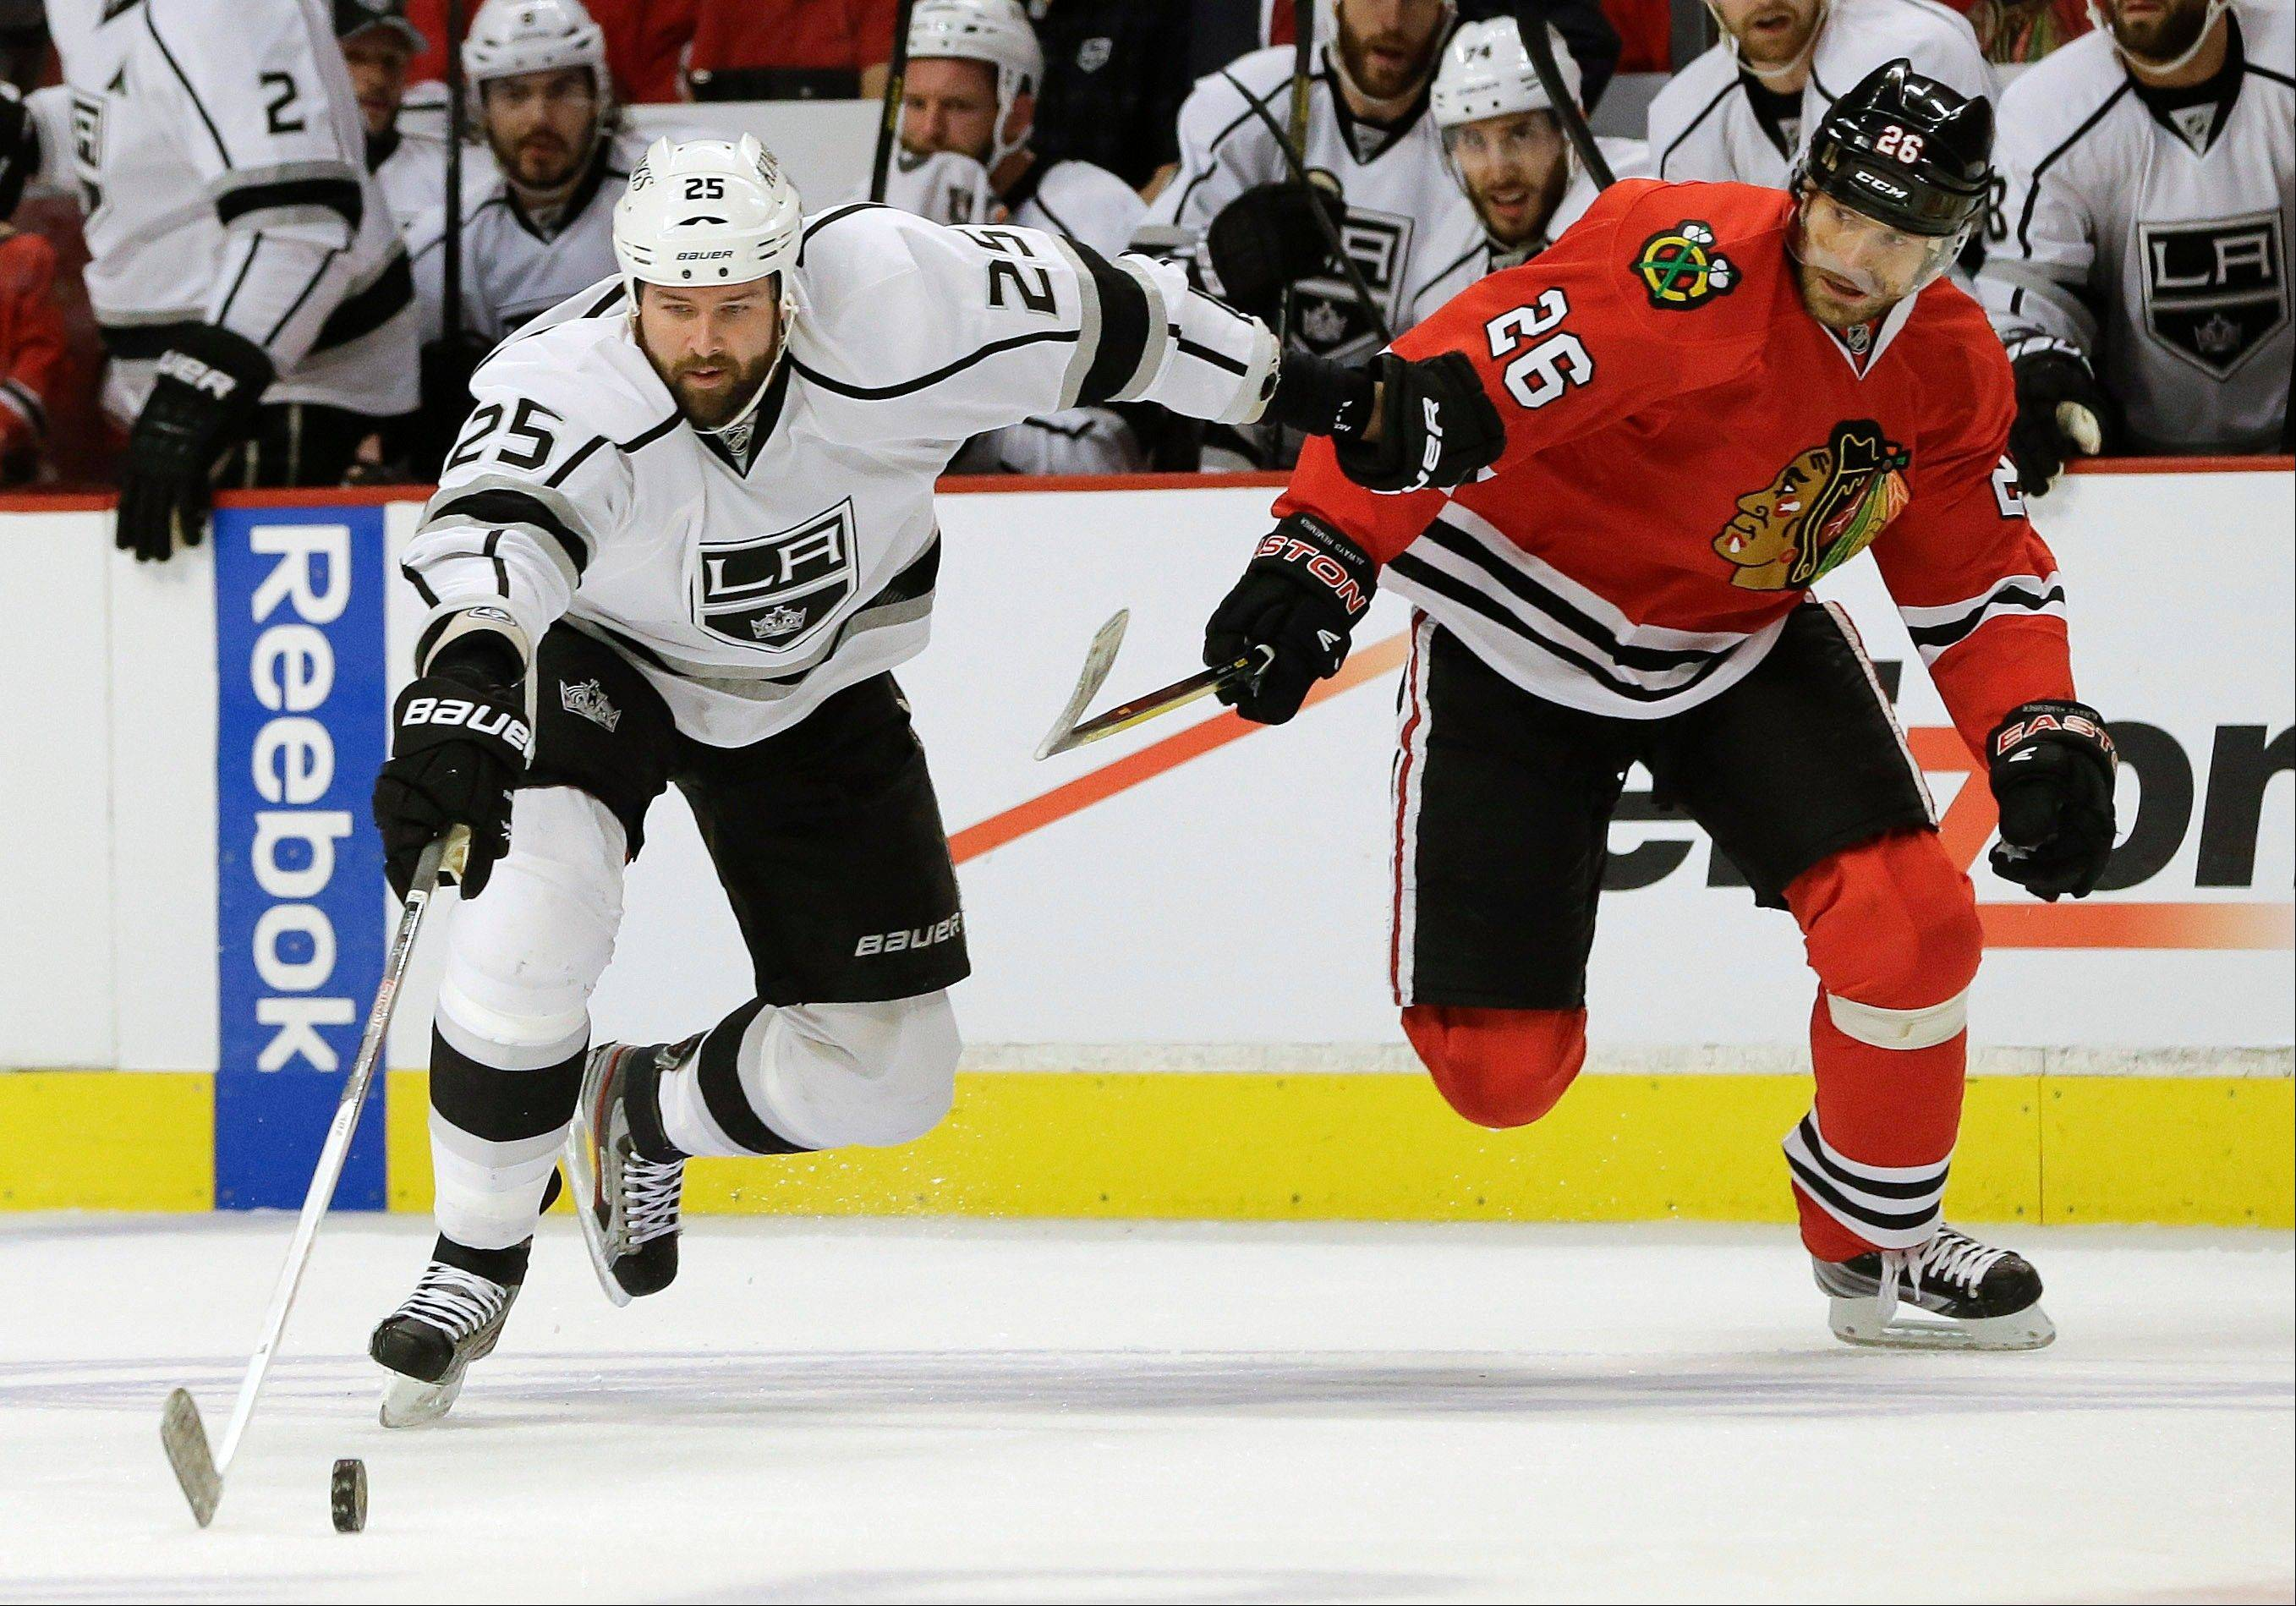 Los Angeles Kings left wing Dustin Penner (25) maintains control of the puck against Chicago Blackhawks center Michal Handzus (26) during the first period of Game 1 of the NHL hockey Stanley Cup Western Conference finals, Saturday, June 1, 2013, in Chicago.